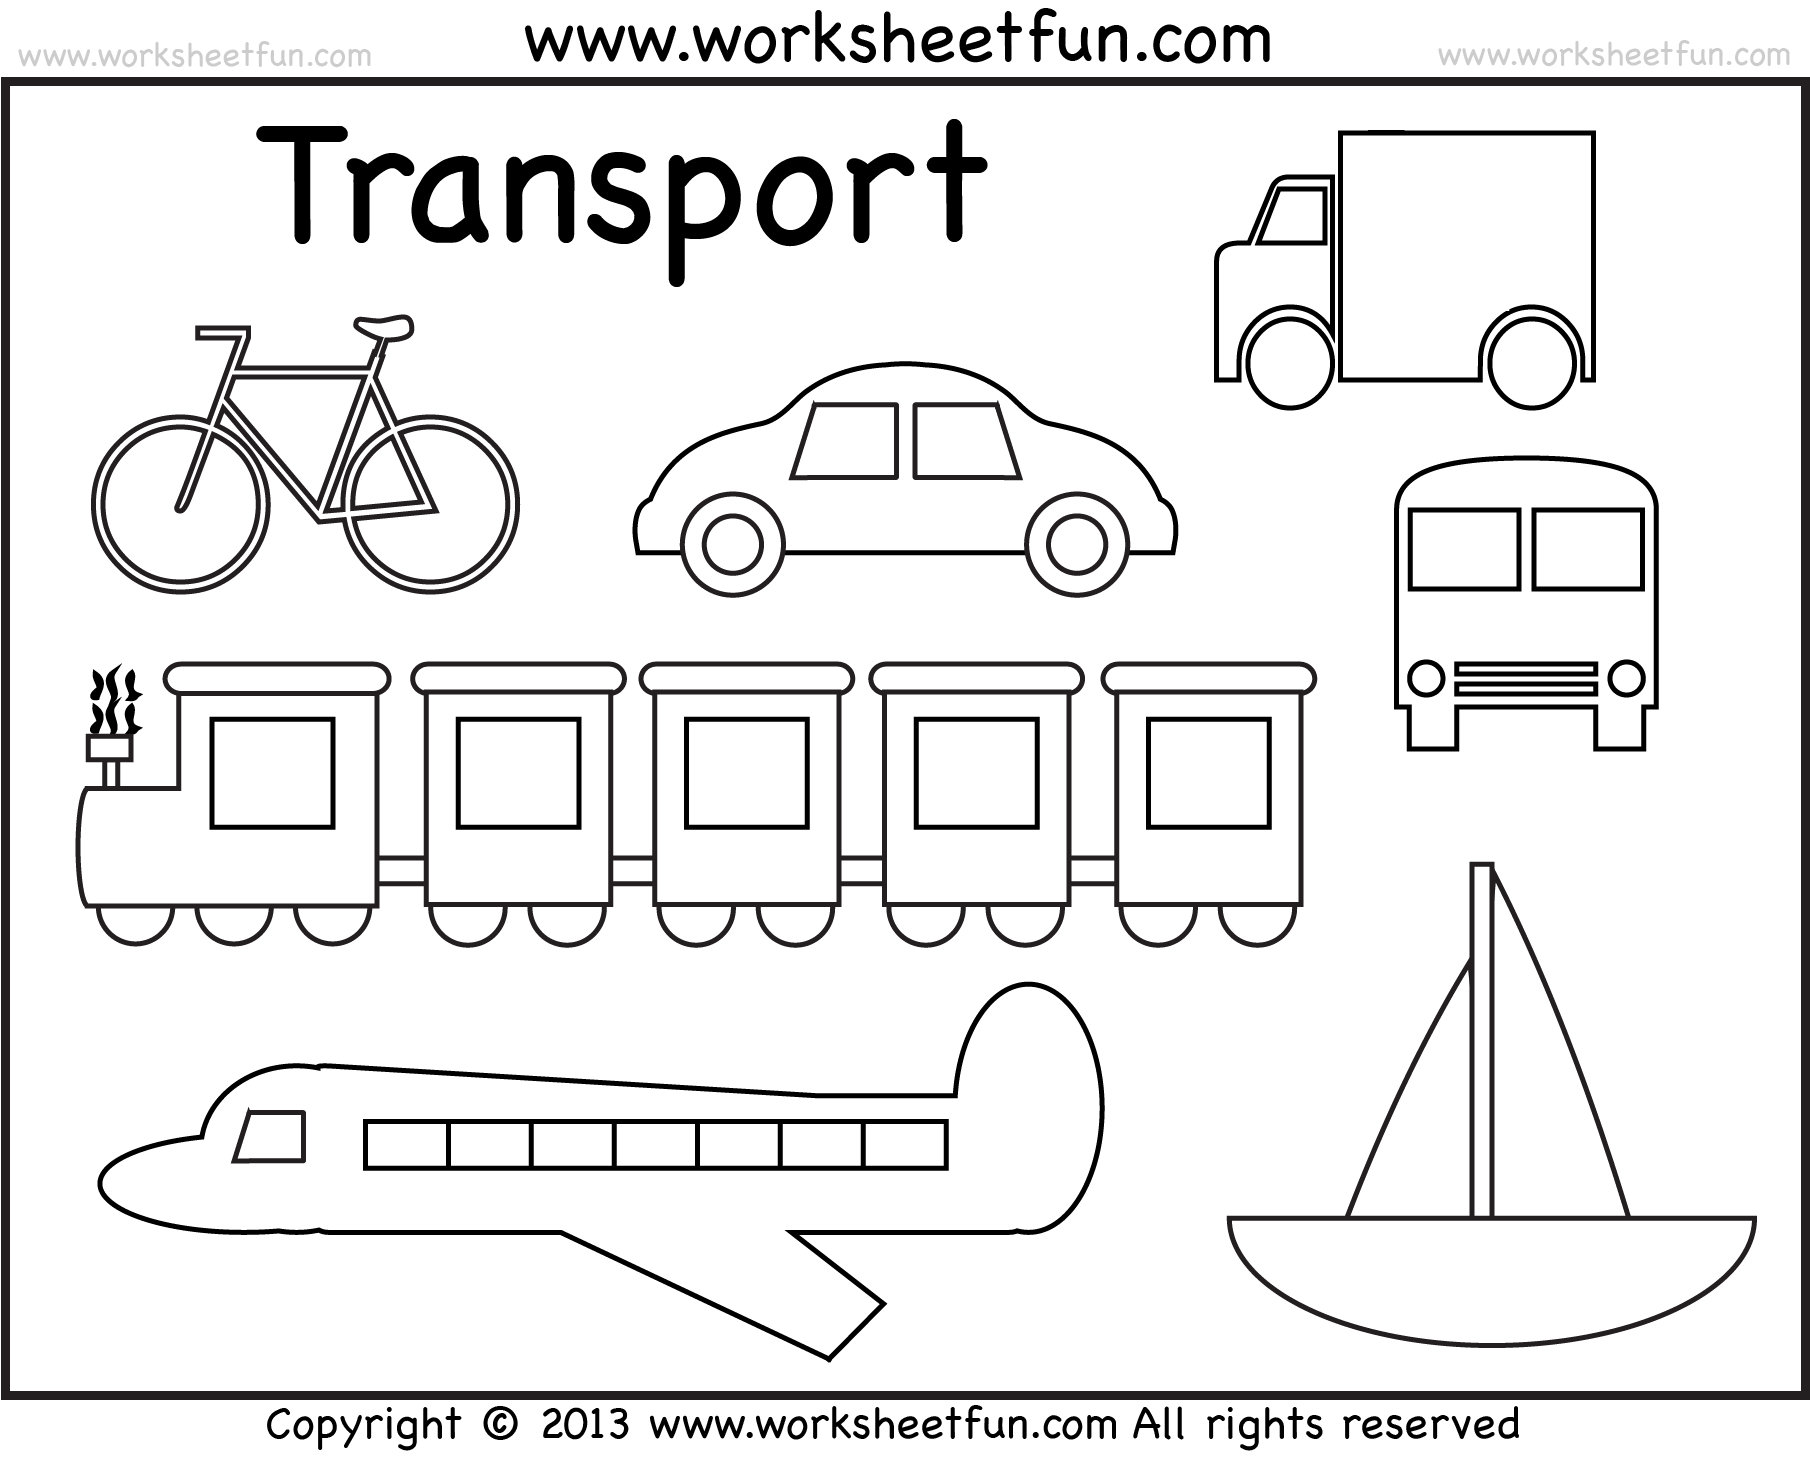 Transport drawing colouring. Transportation coloring p for